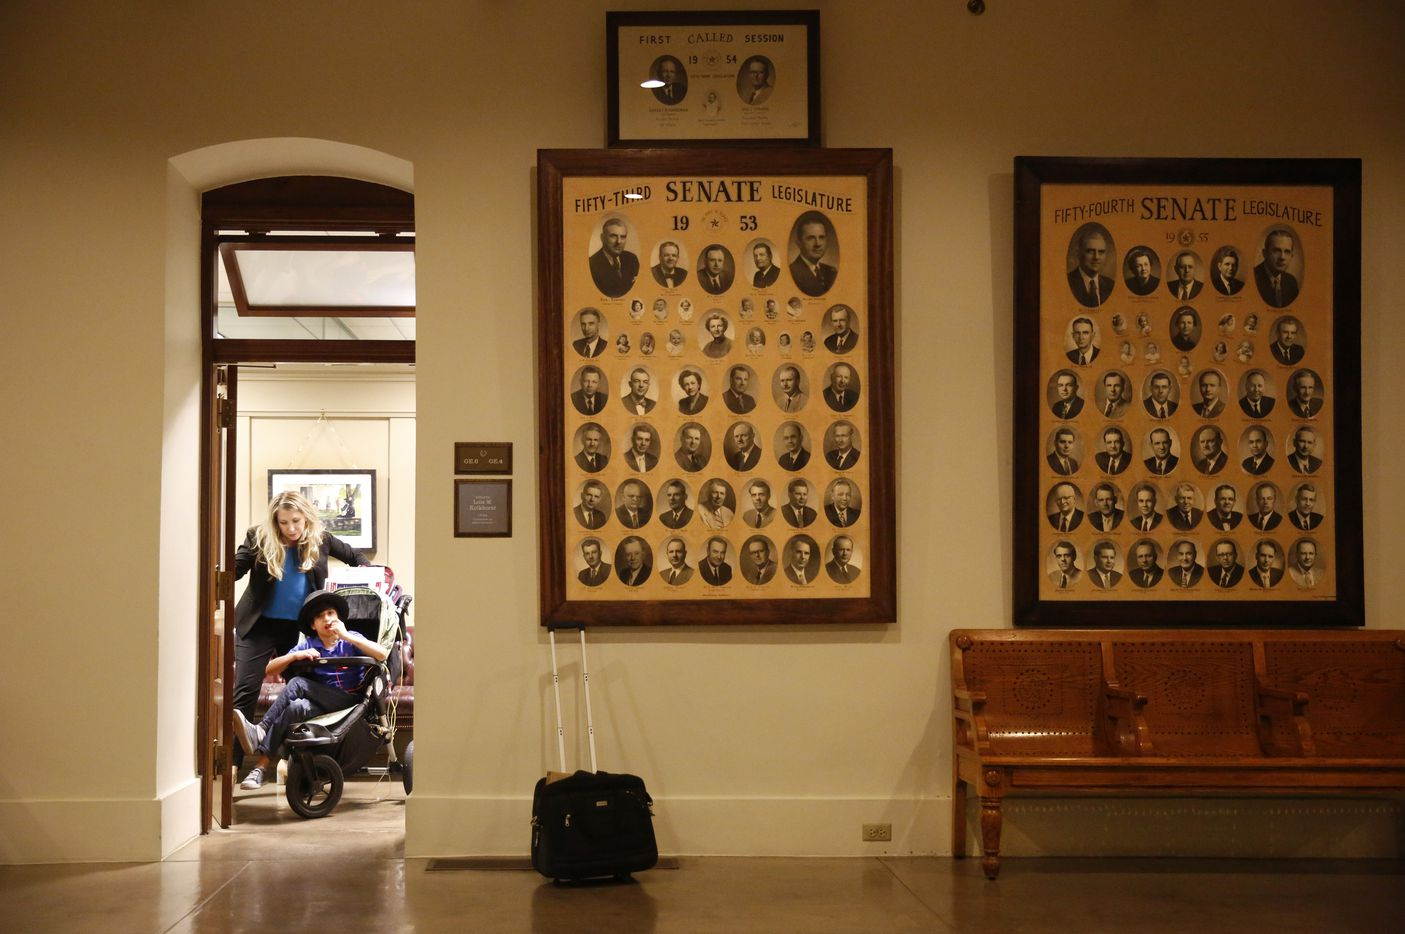 Hannah has trouble pushing Aiden through the door after visiting with staff in Senator Lois Kolkhorst's office at the Texas State Capitol. Photos of past Senators line the walls of the corridor.